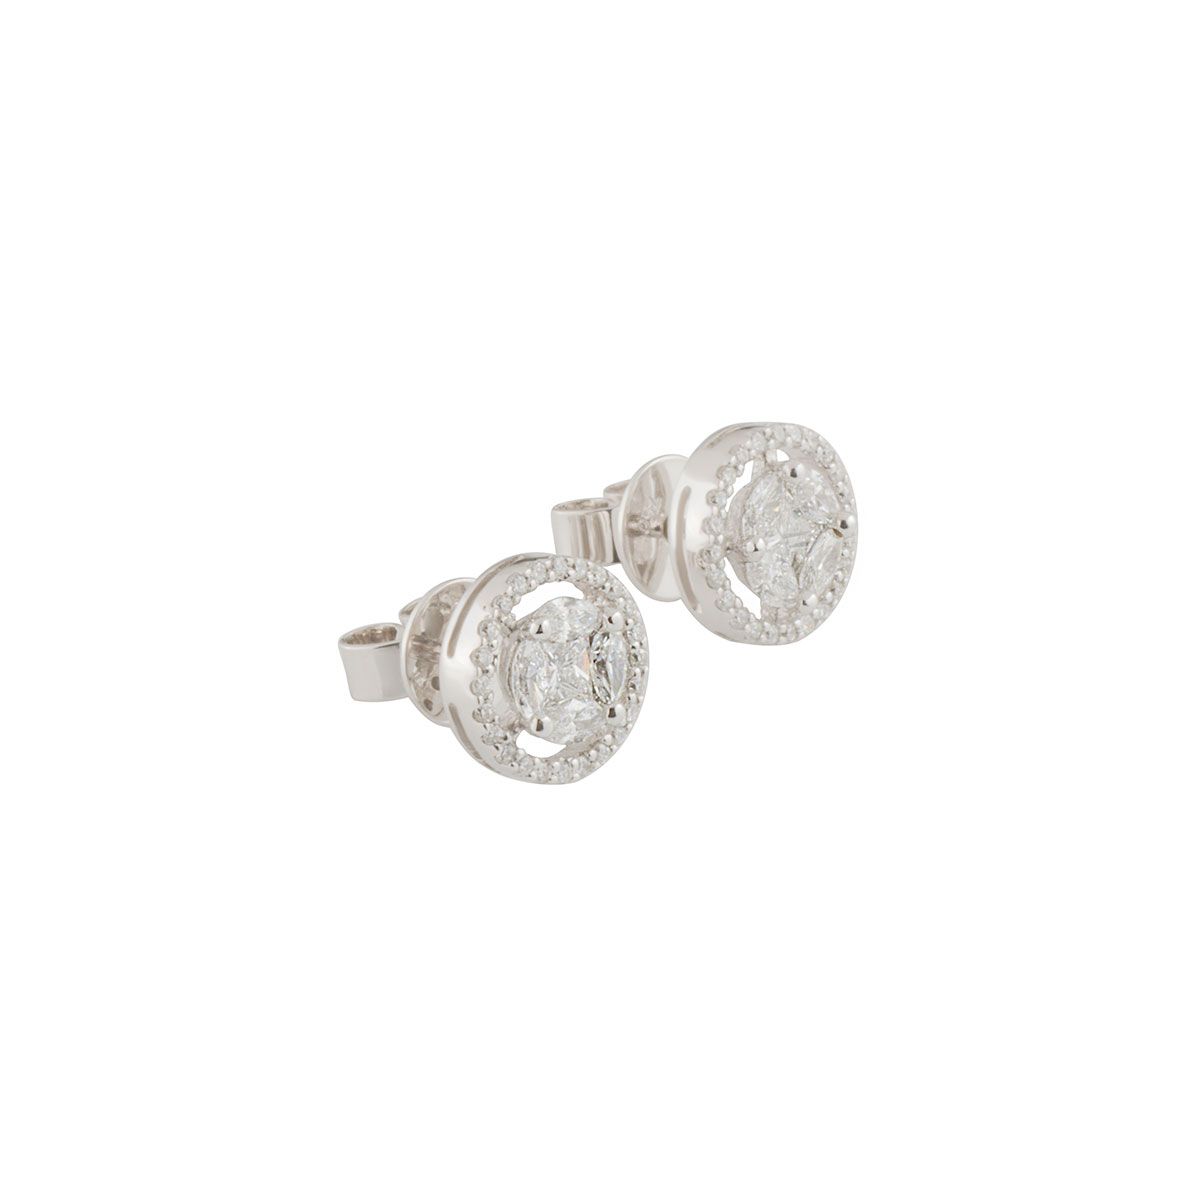 White Gold Diamond Cluster Earrings 0.80ct G-H/VS-VVS